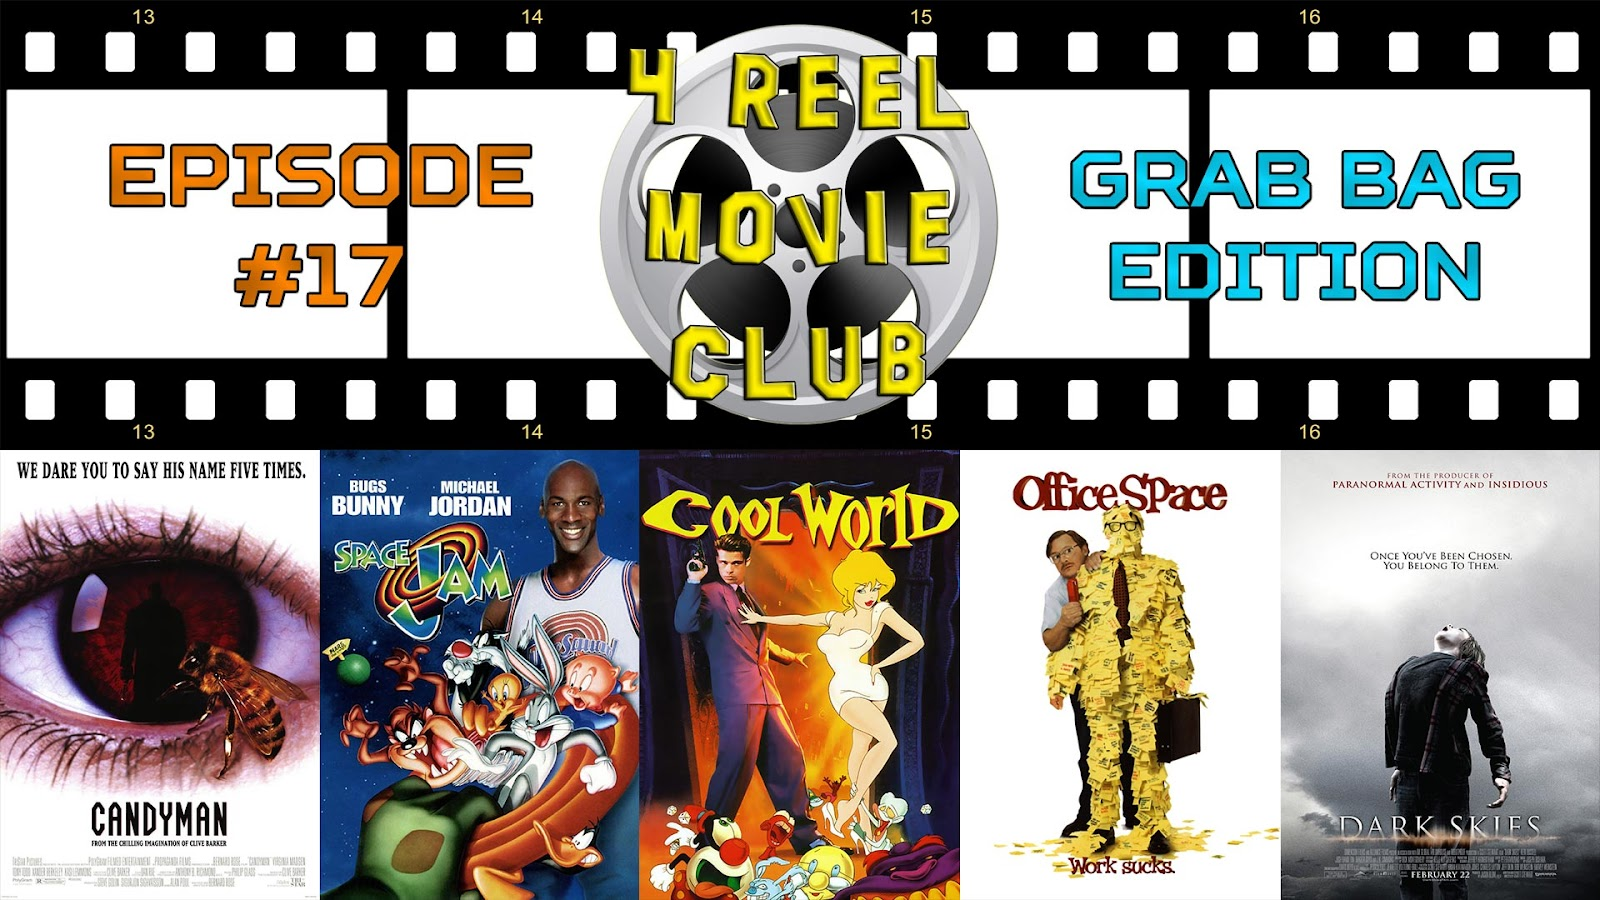 Candyman, Space Jam, Cool World, Office Space, Dark Skies